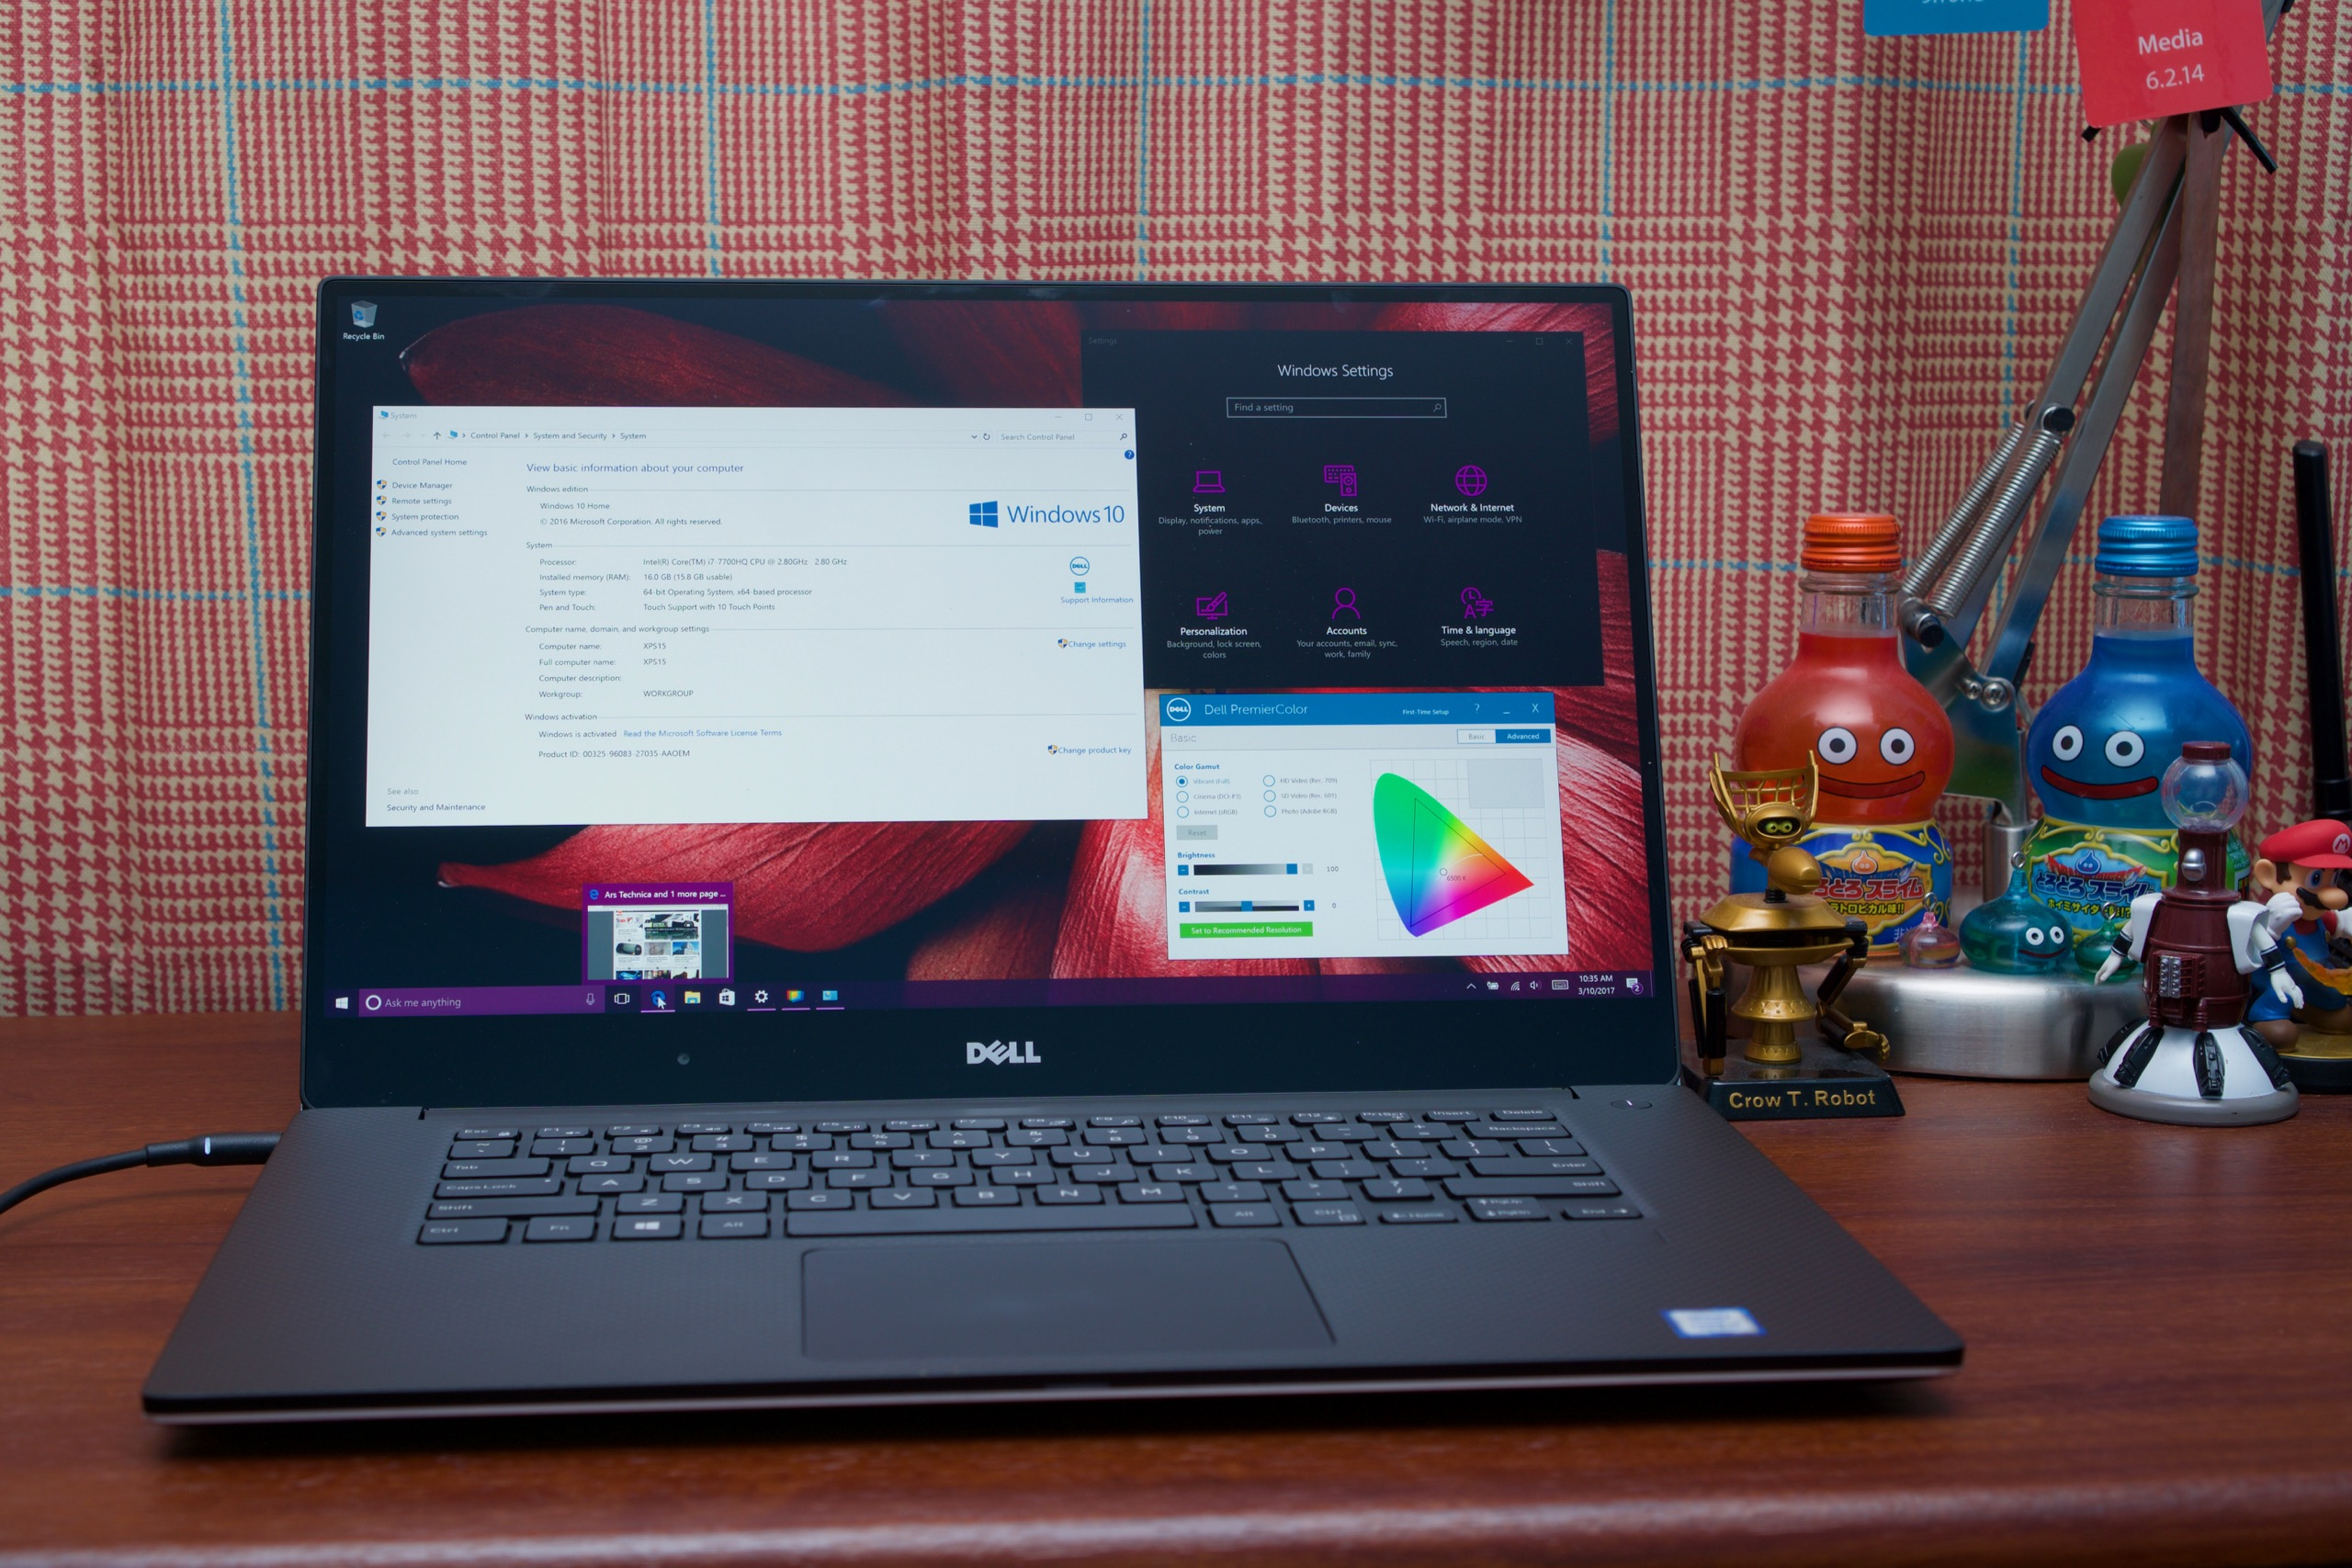 Review: Better GPU and 4K screen make the XPS 15 a MacBook Pro for